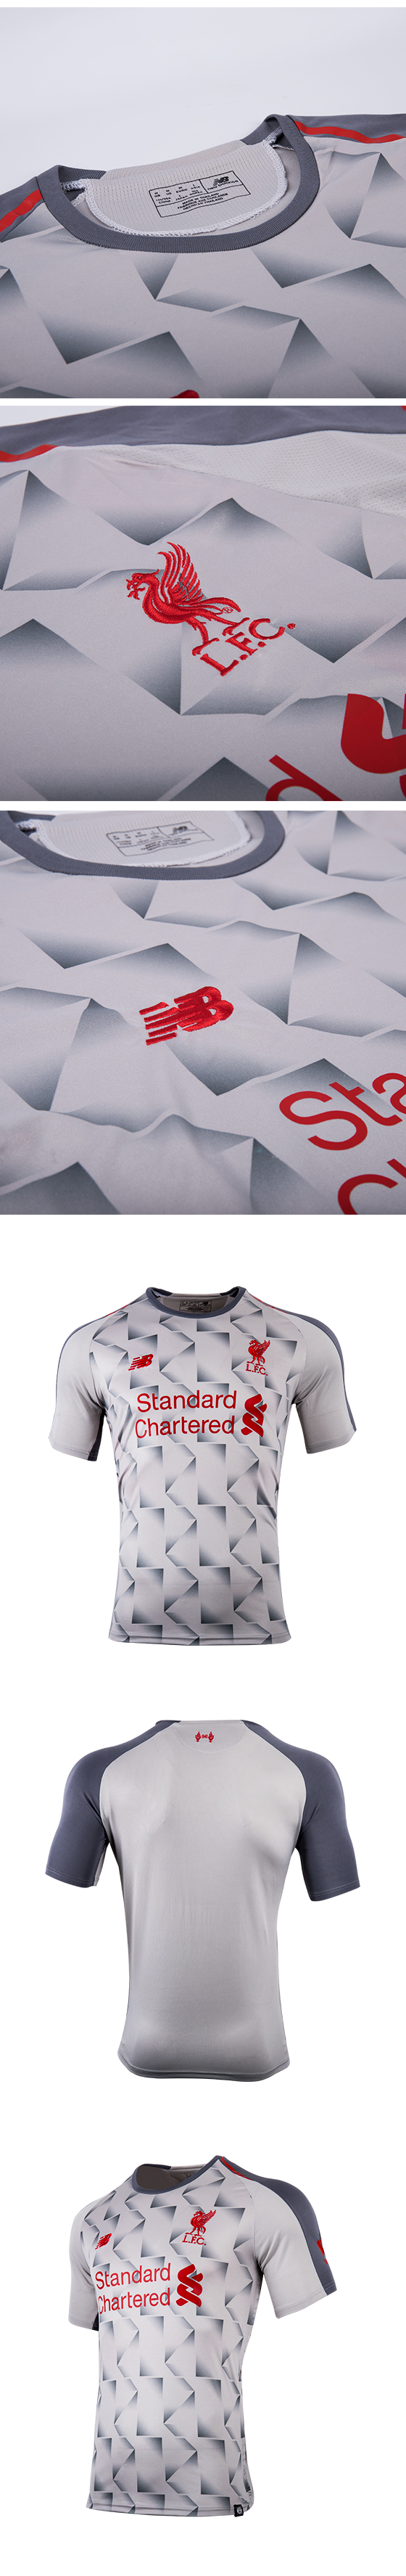 3d7822cc1 Update  Official pictures of the Liverpool 18-19 third kit have leaked